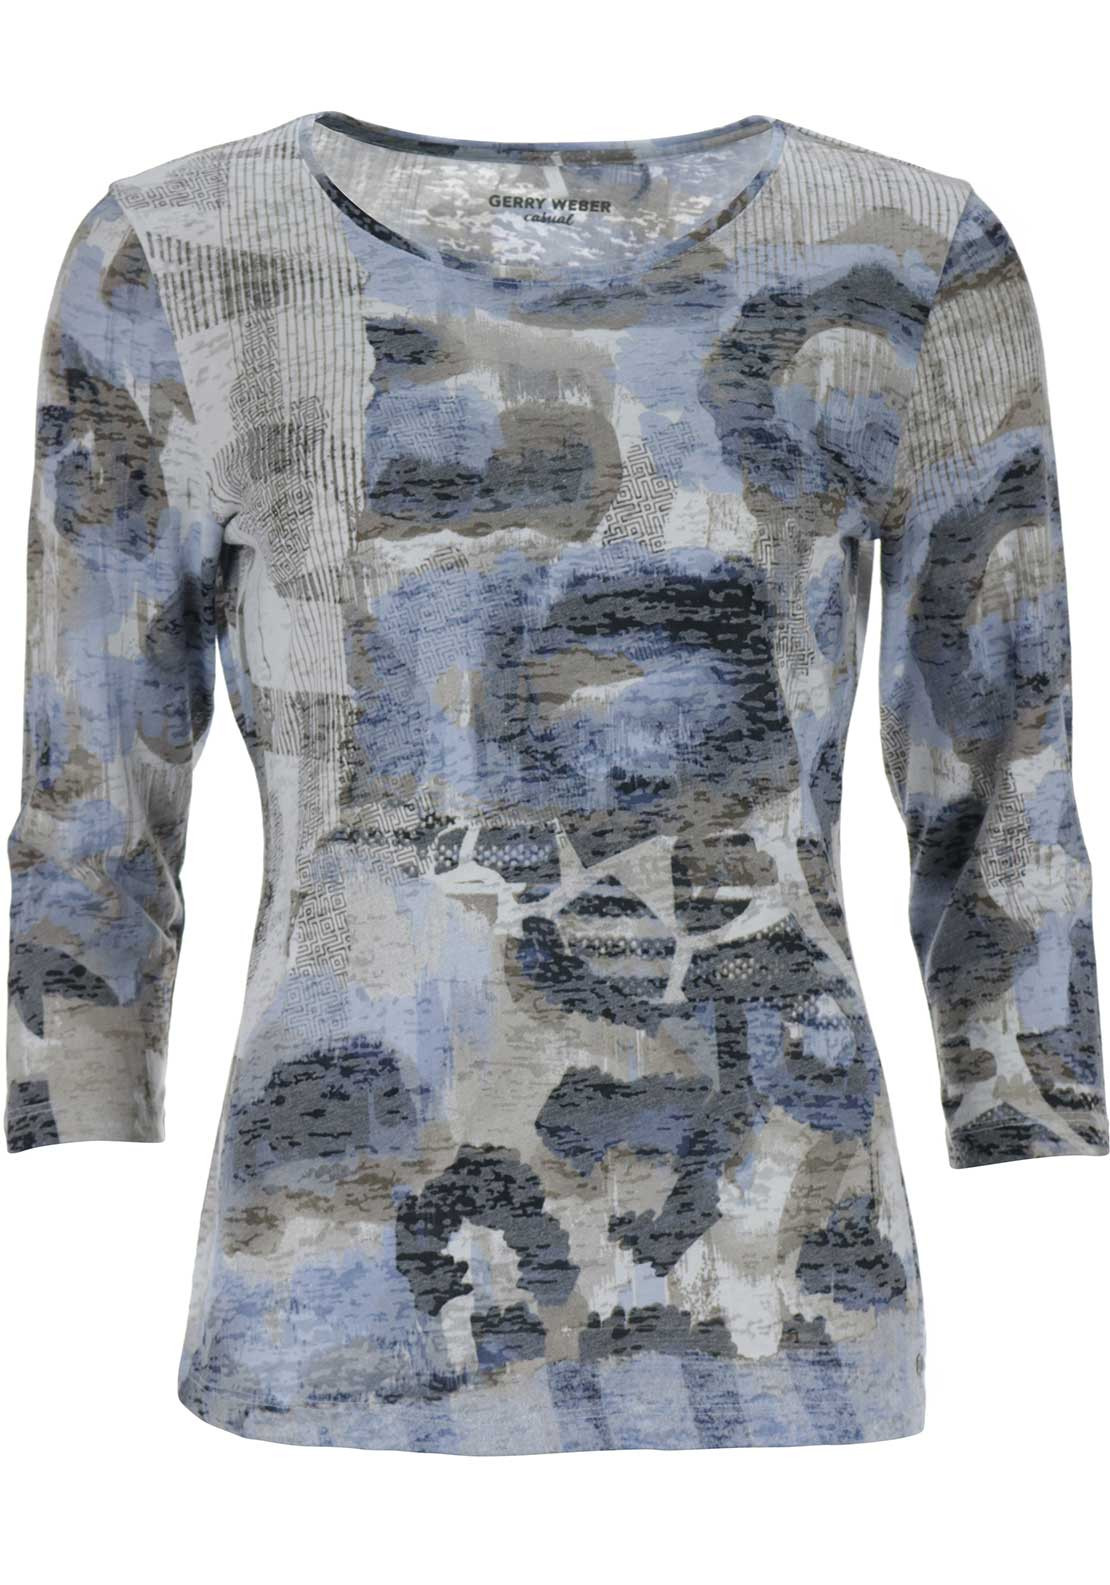 Gerry Weber Printed Top, Multi-coloured